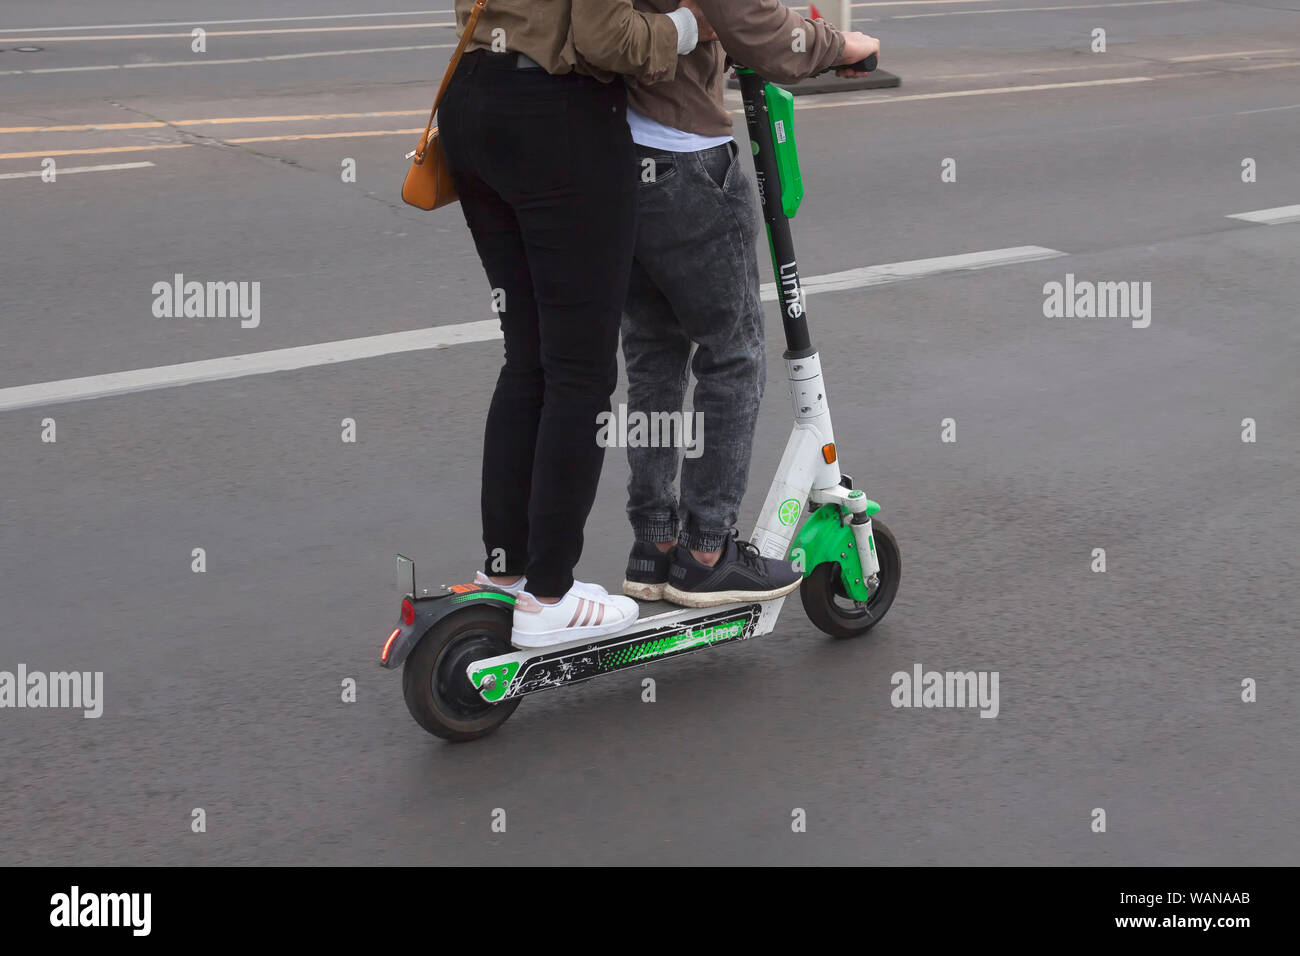 Two persons on an e-scooter, not allowed Stock Photo